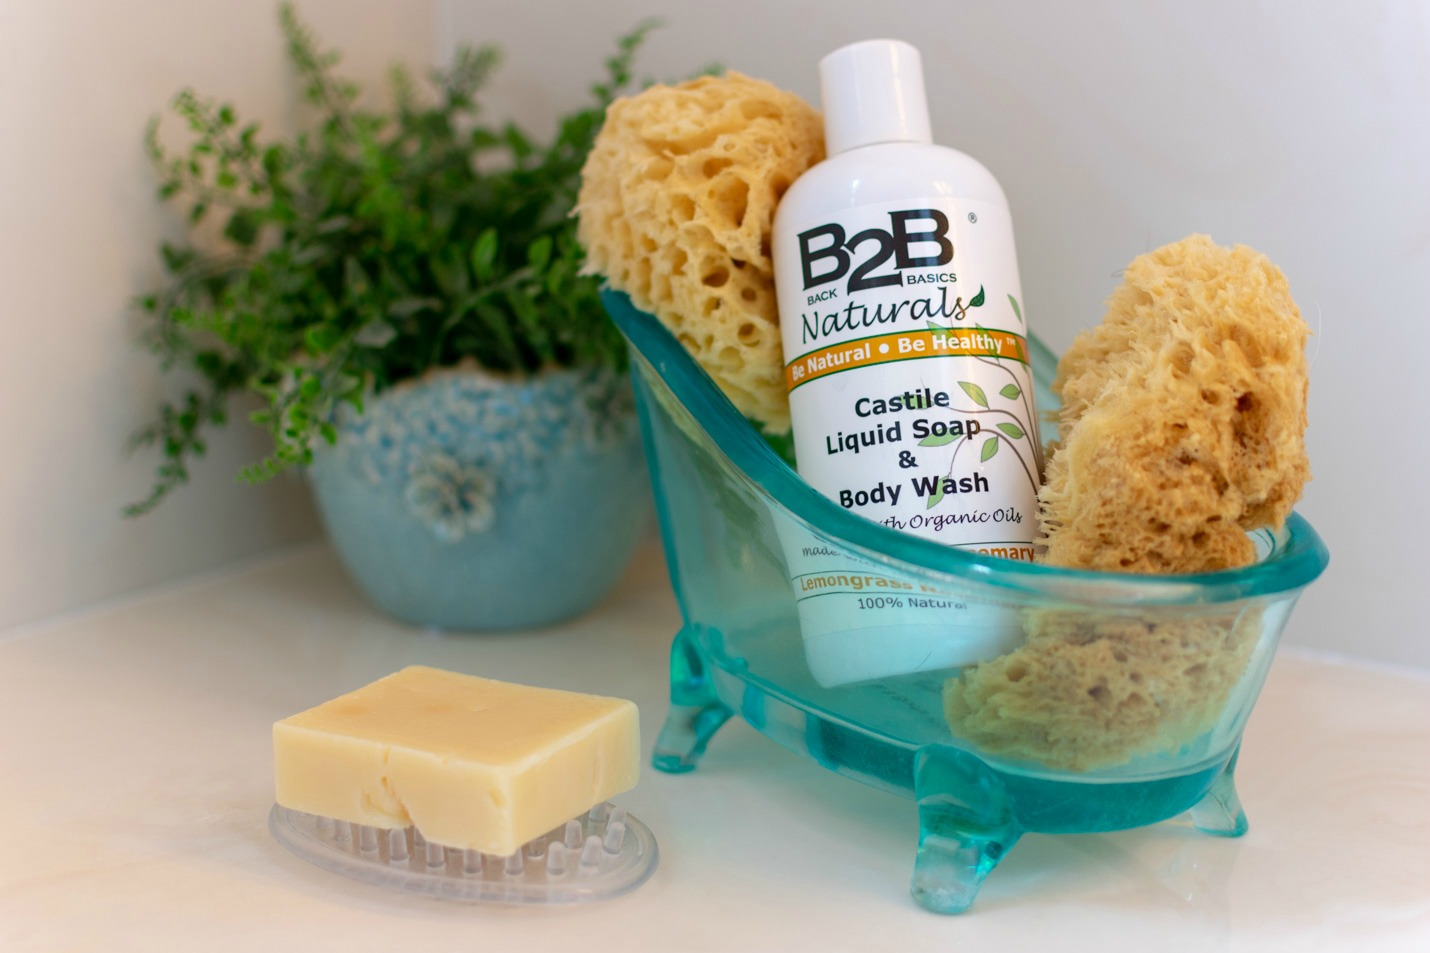 B2B Bath and Body Products